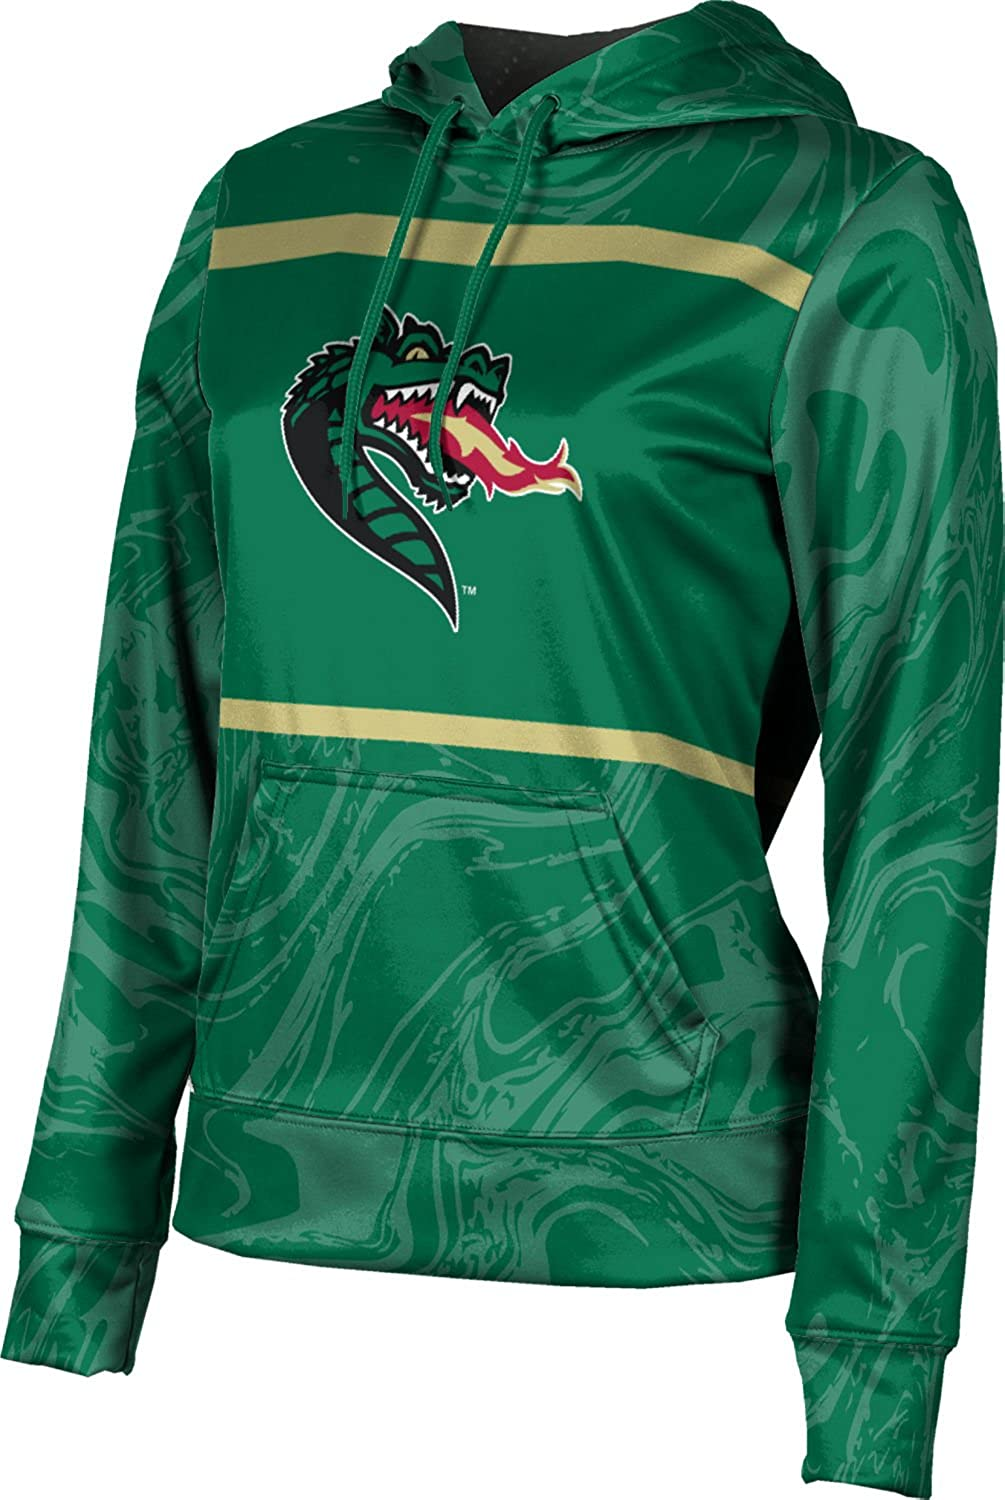 ProSphere University of Alabama at Birmingham Girls' Pullover Hoodie, School Spirit Sweatshirt (Ripple)